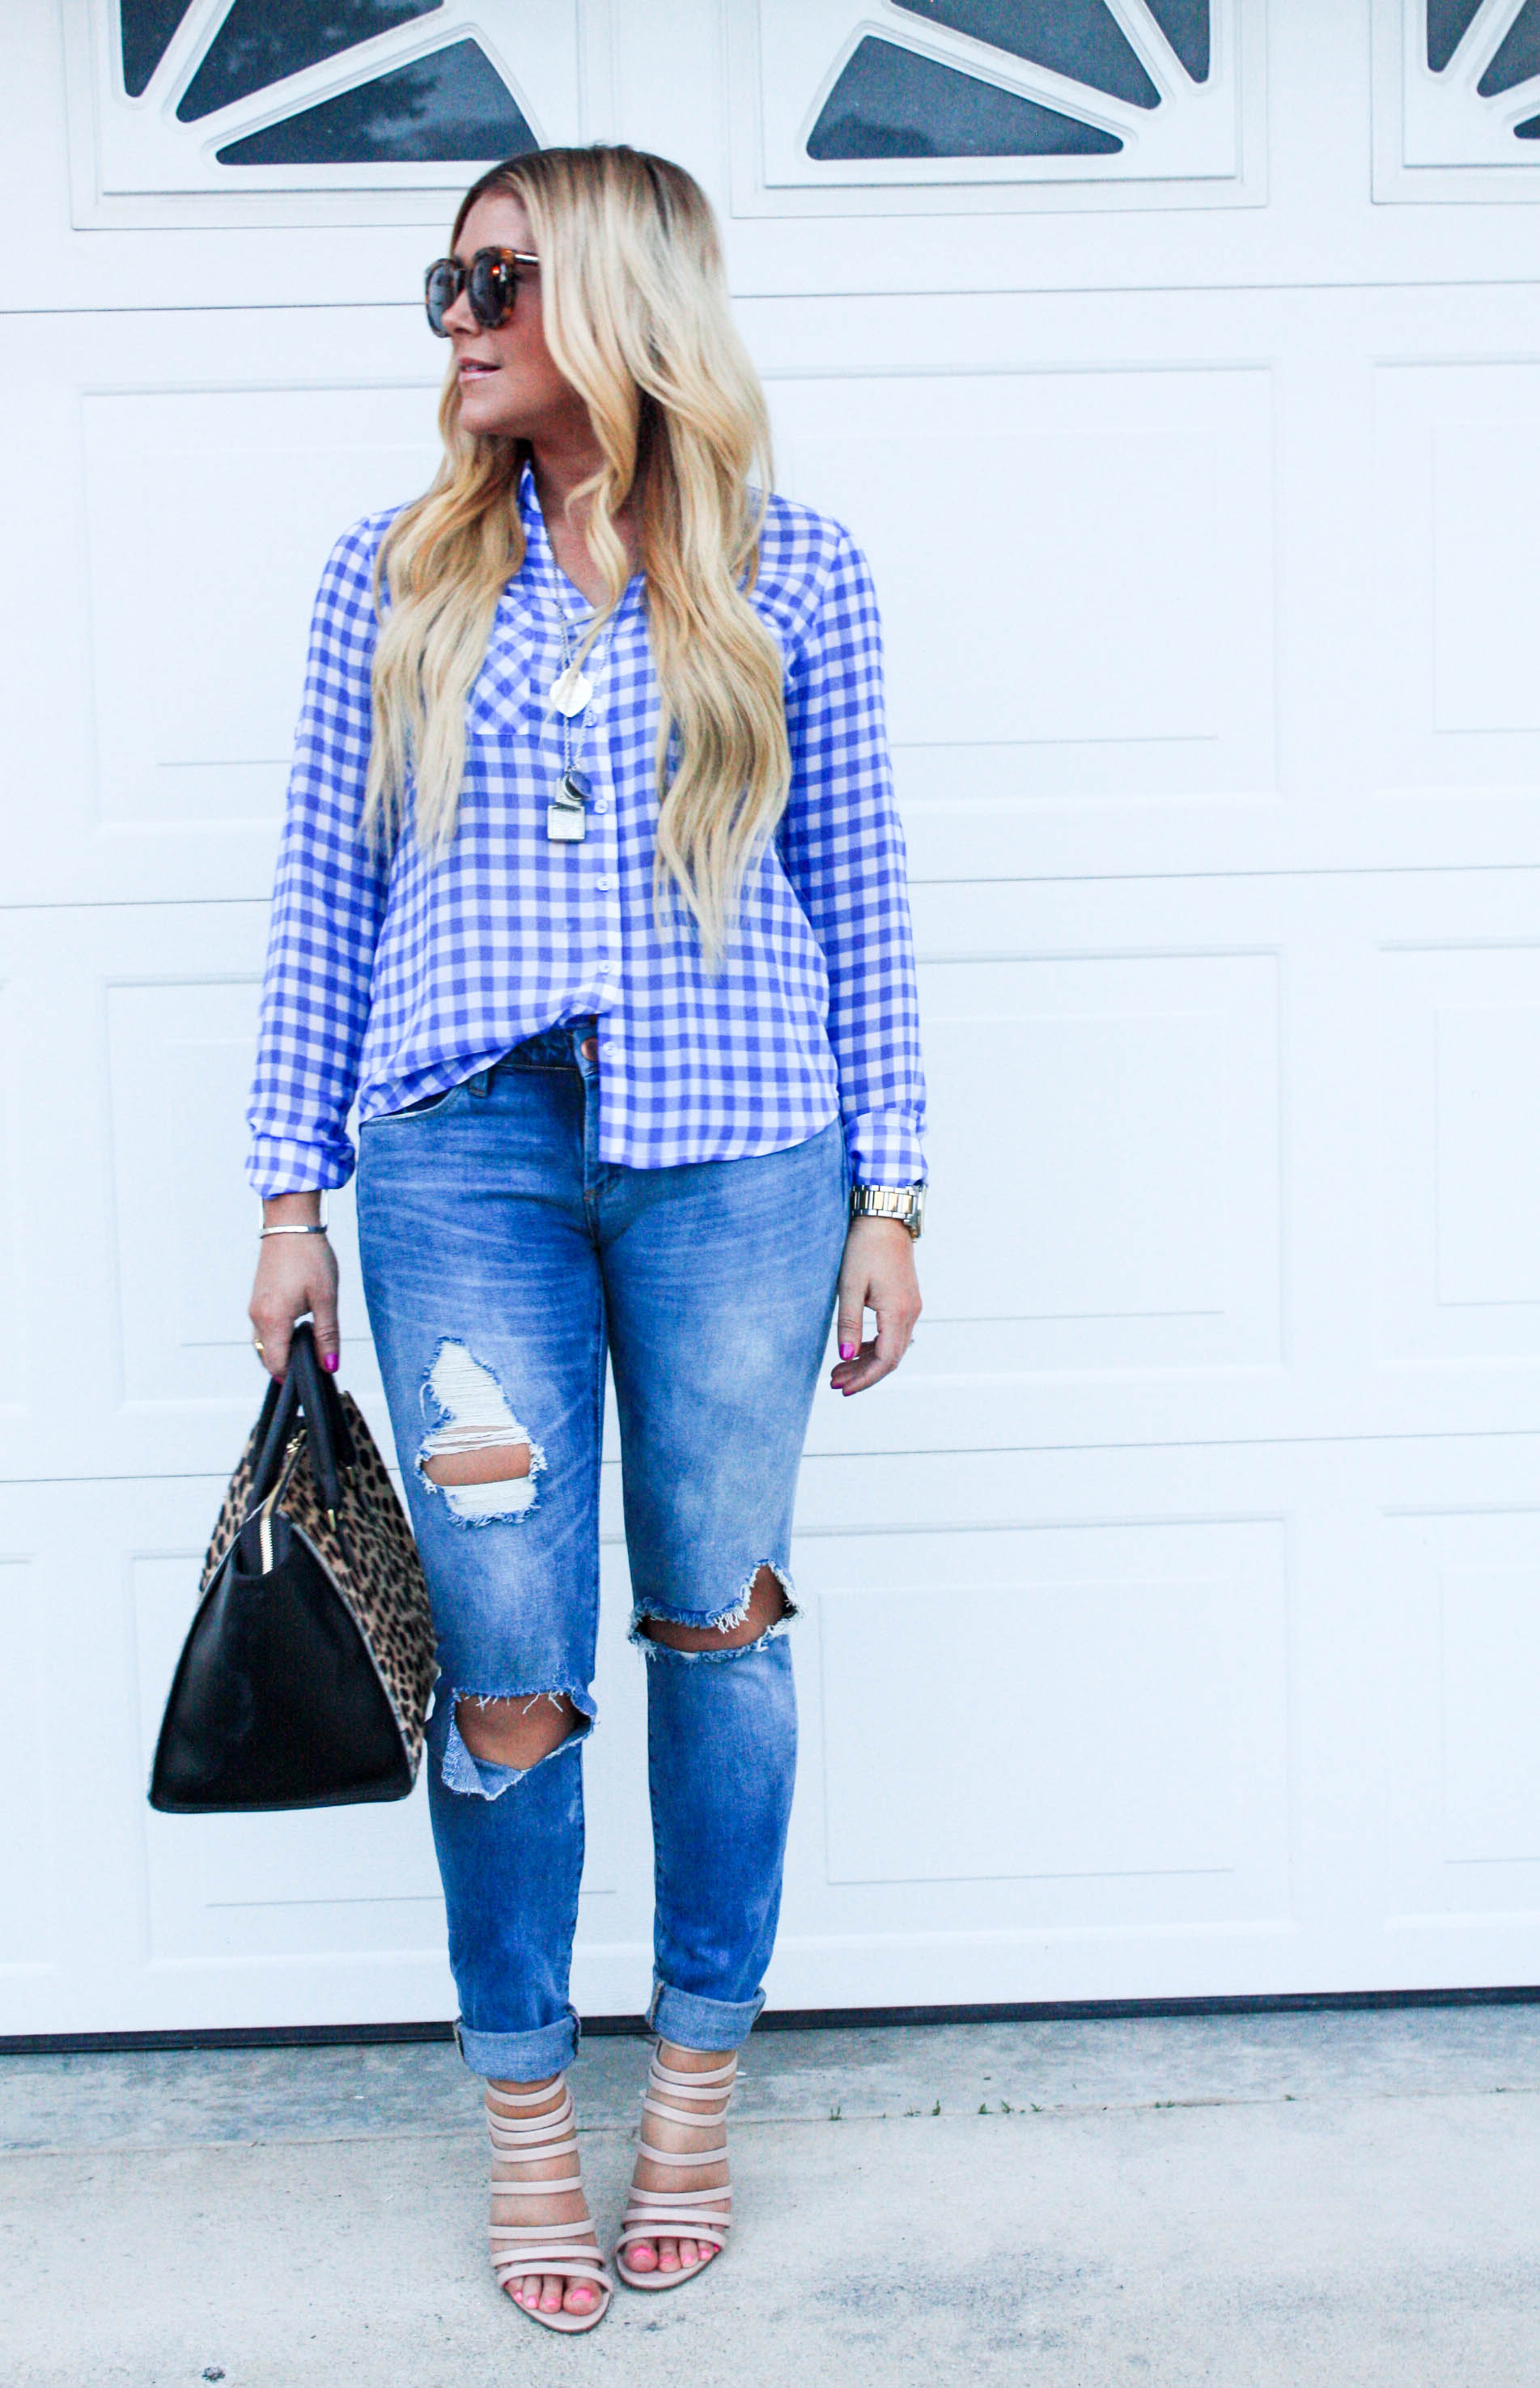 a691b0779ea0 Gingham Shirt  Express (these are THE BEST shirts ever and come in TONS of  colors!)